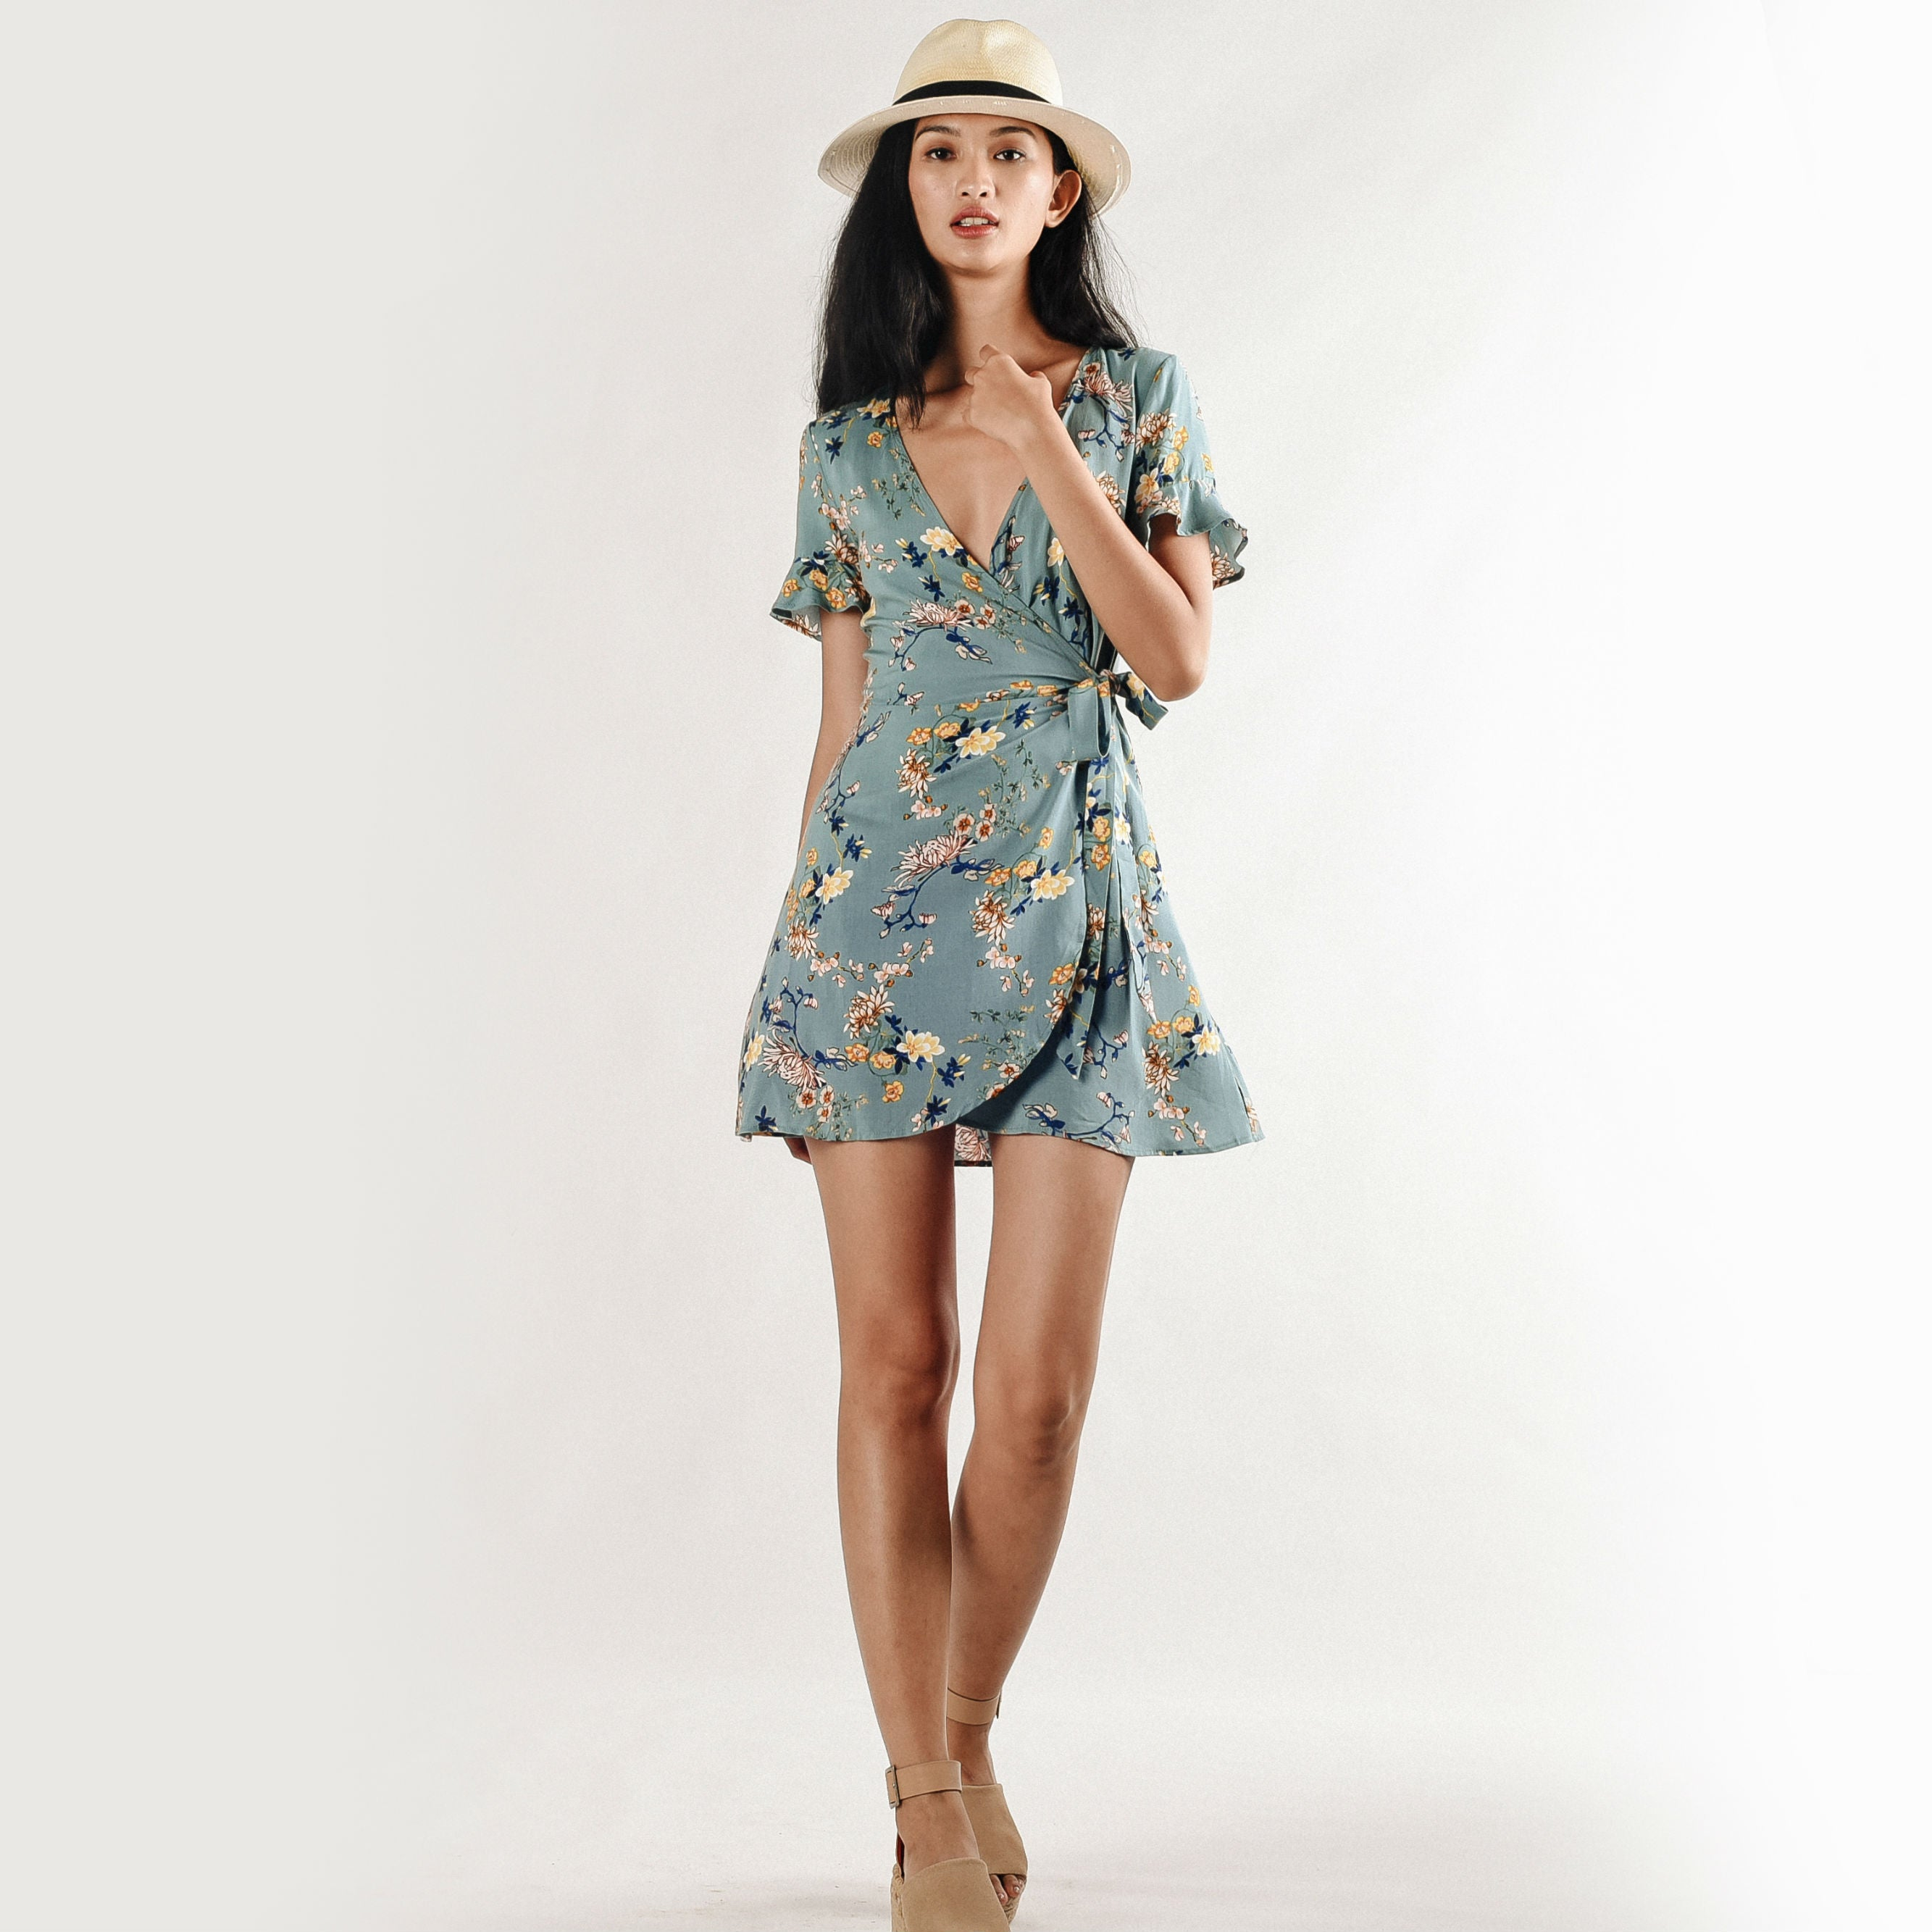 Ploy Floral Wrap Dress - Tiffany Green